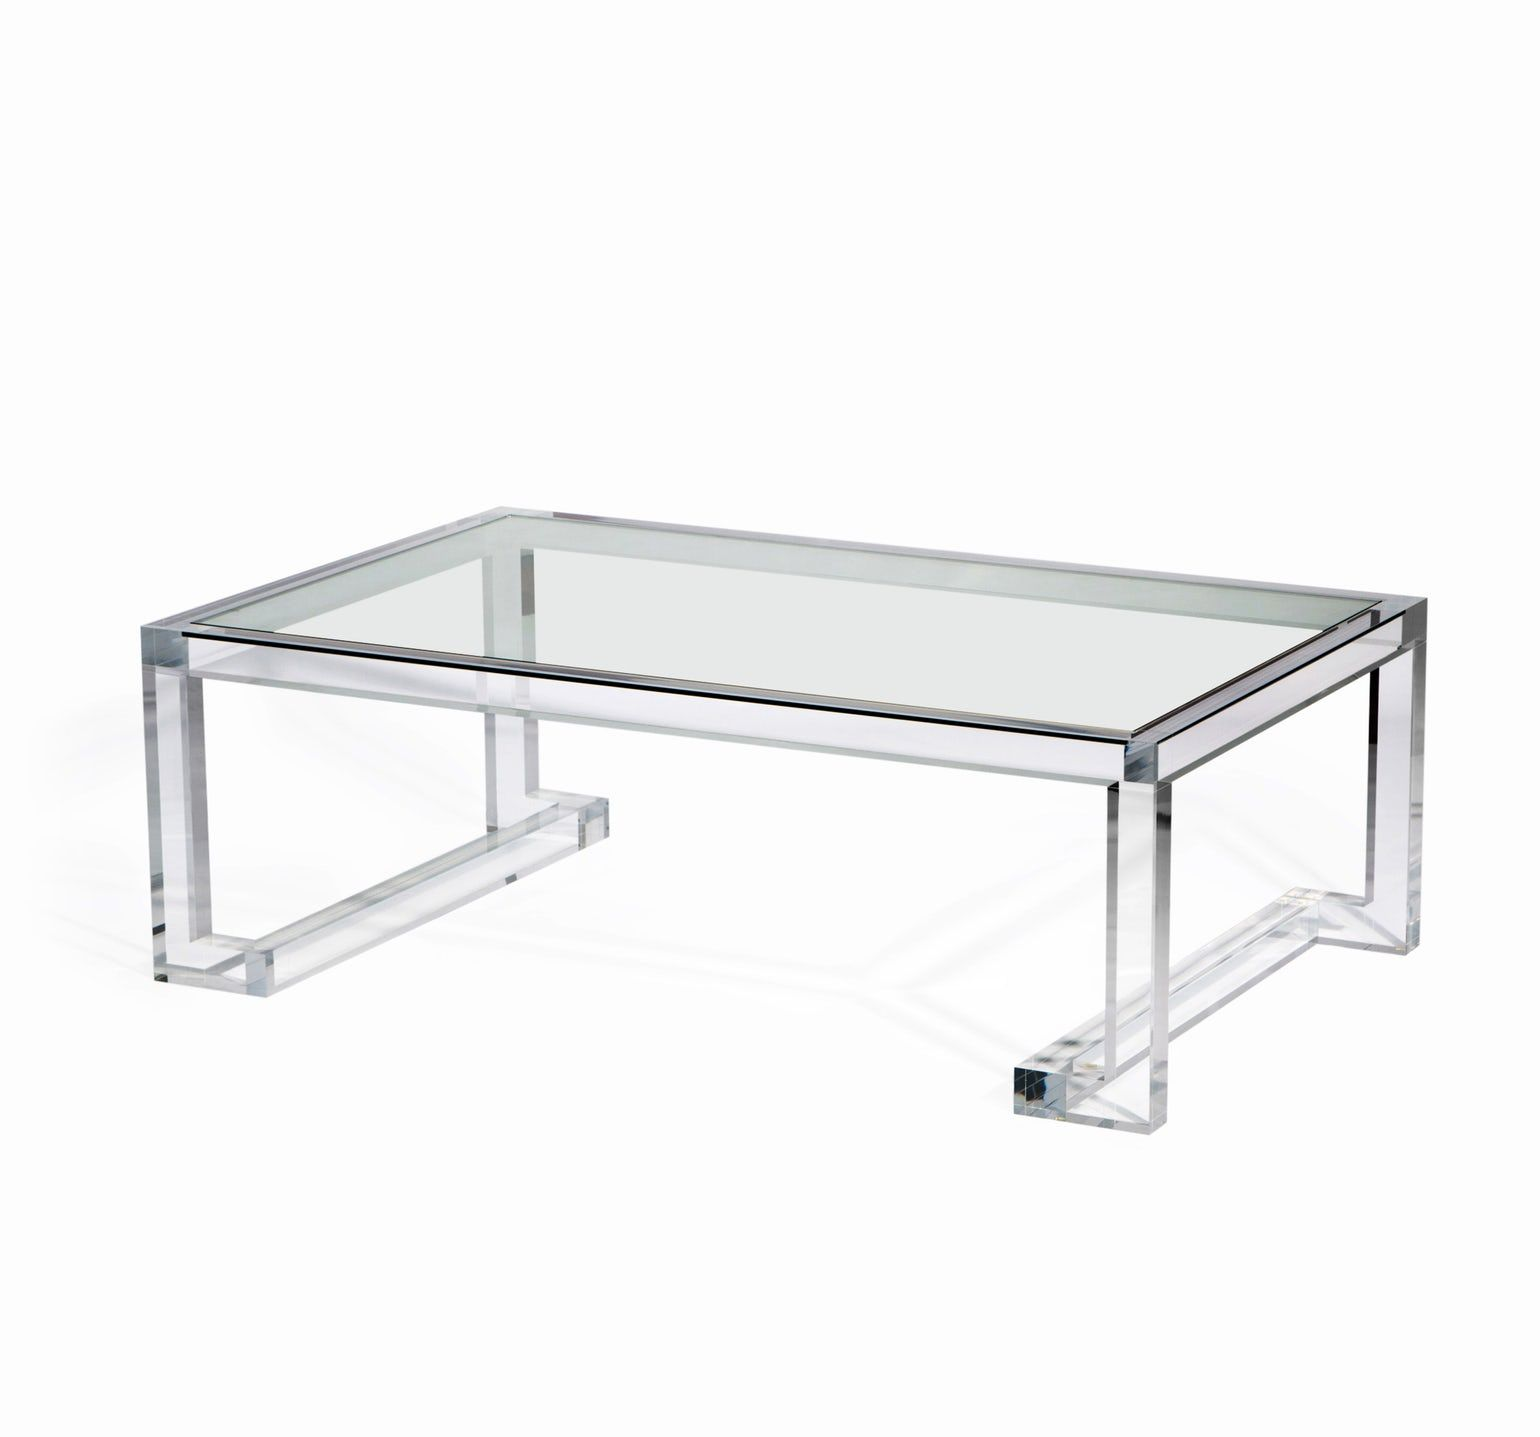 Ava Cocktail Table Contemporary Transitional Midcentury Modern Art Deco Glass Acrylic Coffee Cocktai Acrylic Coffee Table Coffee Table Cocktail Tables [ 1437 x 1540 Pixel ]